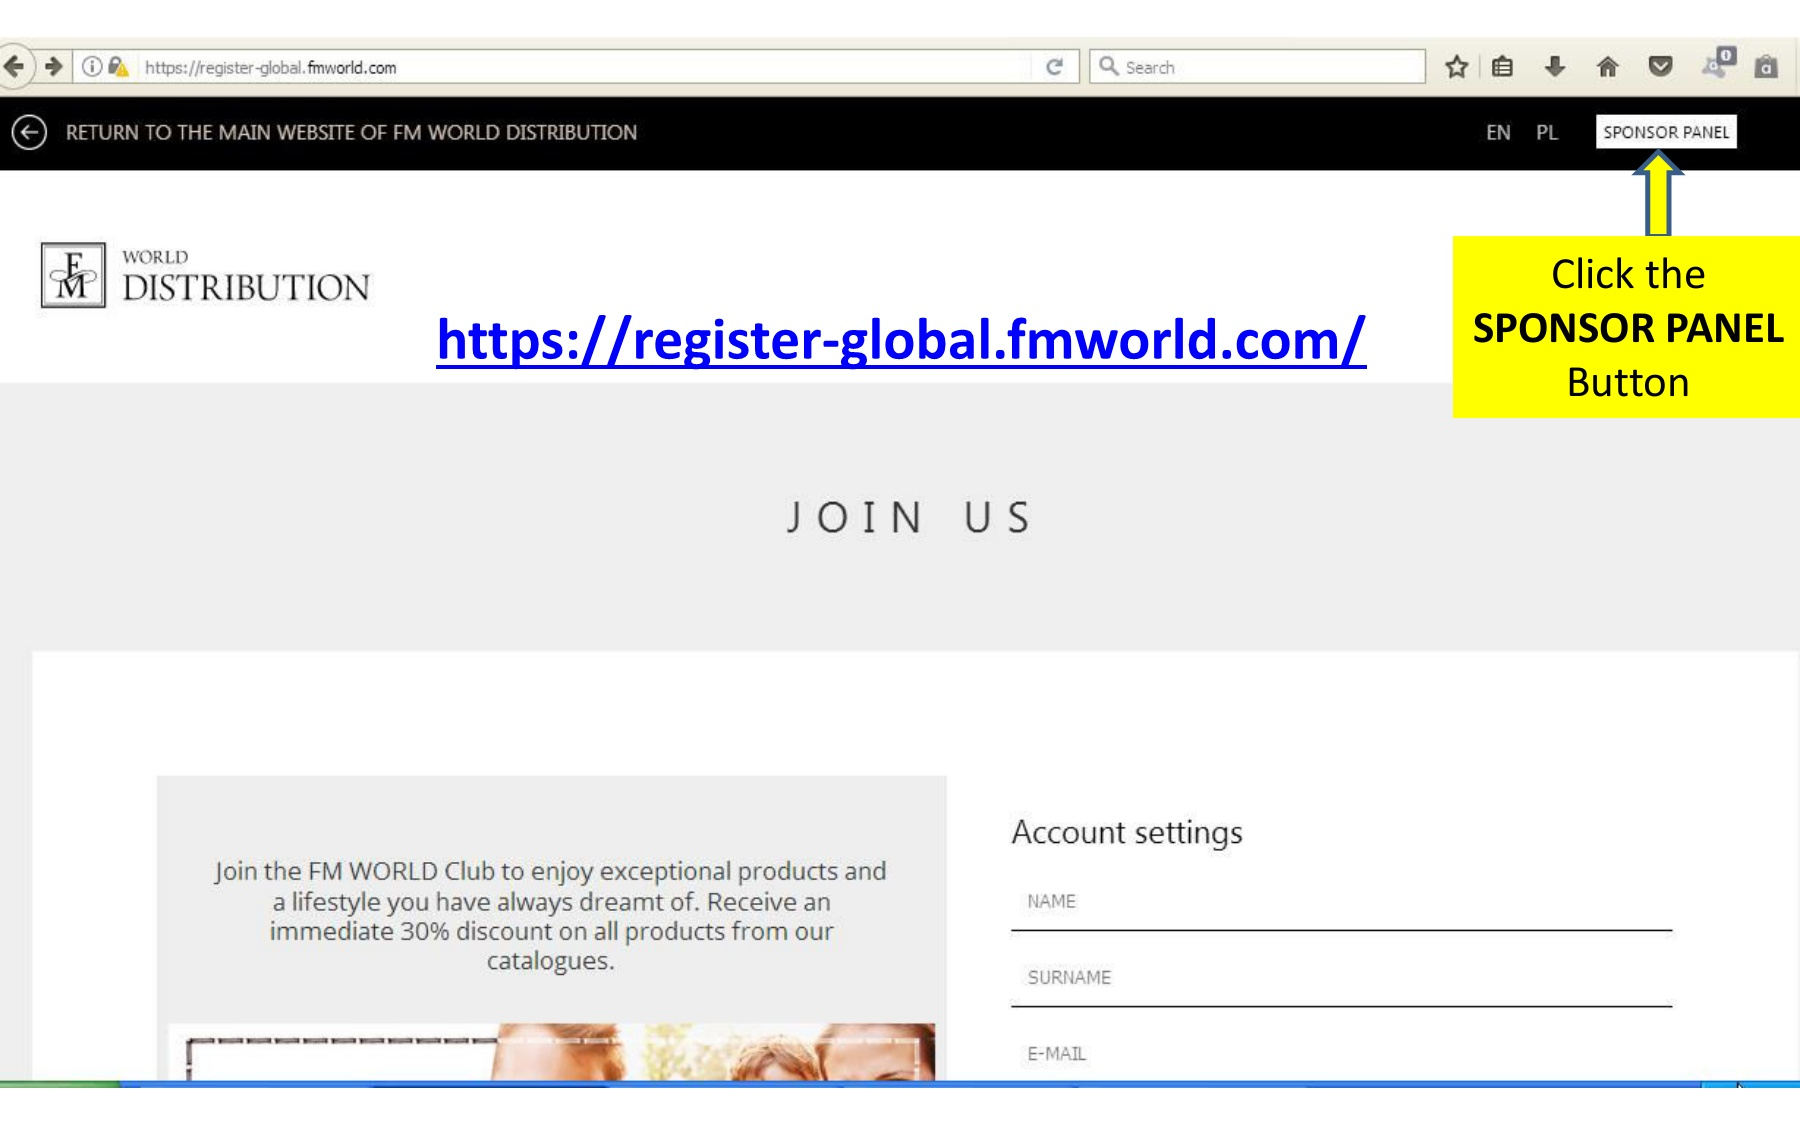 CREATE YOUR REFERRAL LINK